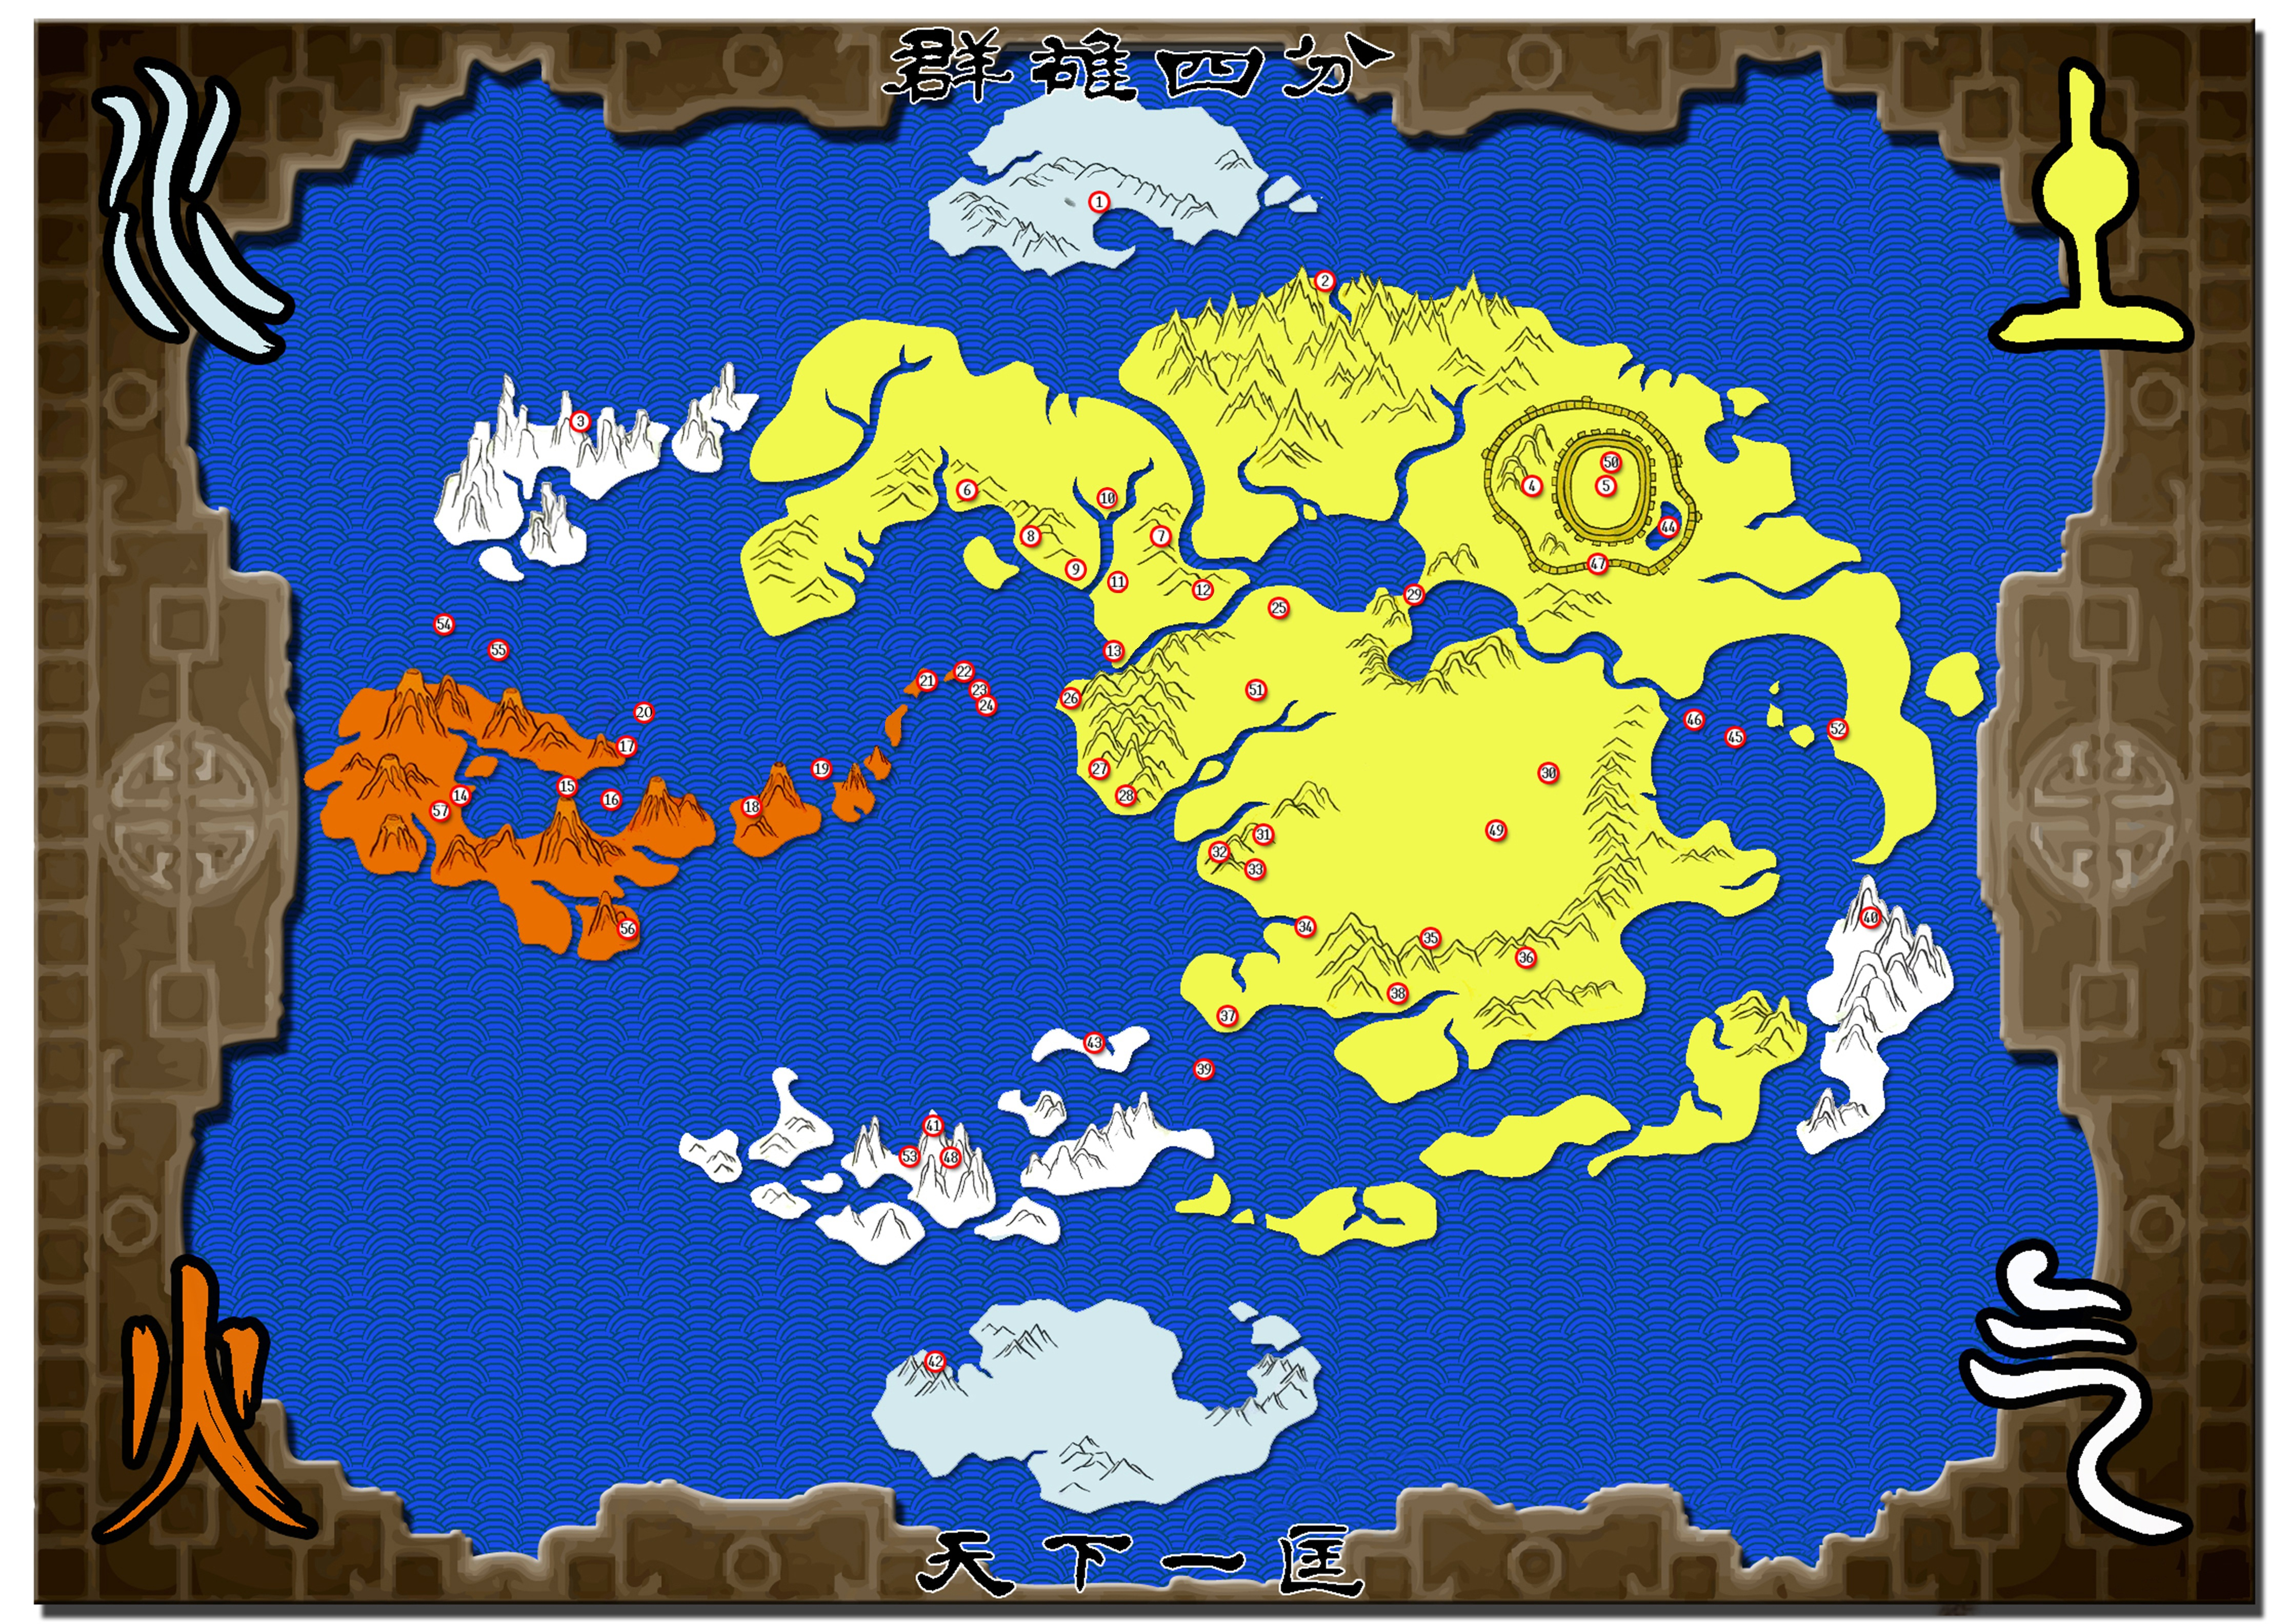 Map of the World of Avatar | Avatar Wiki | FANDOM powered by Wikia